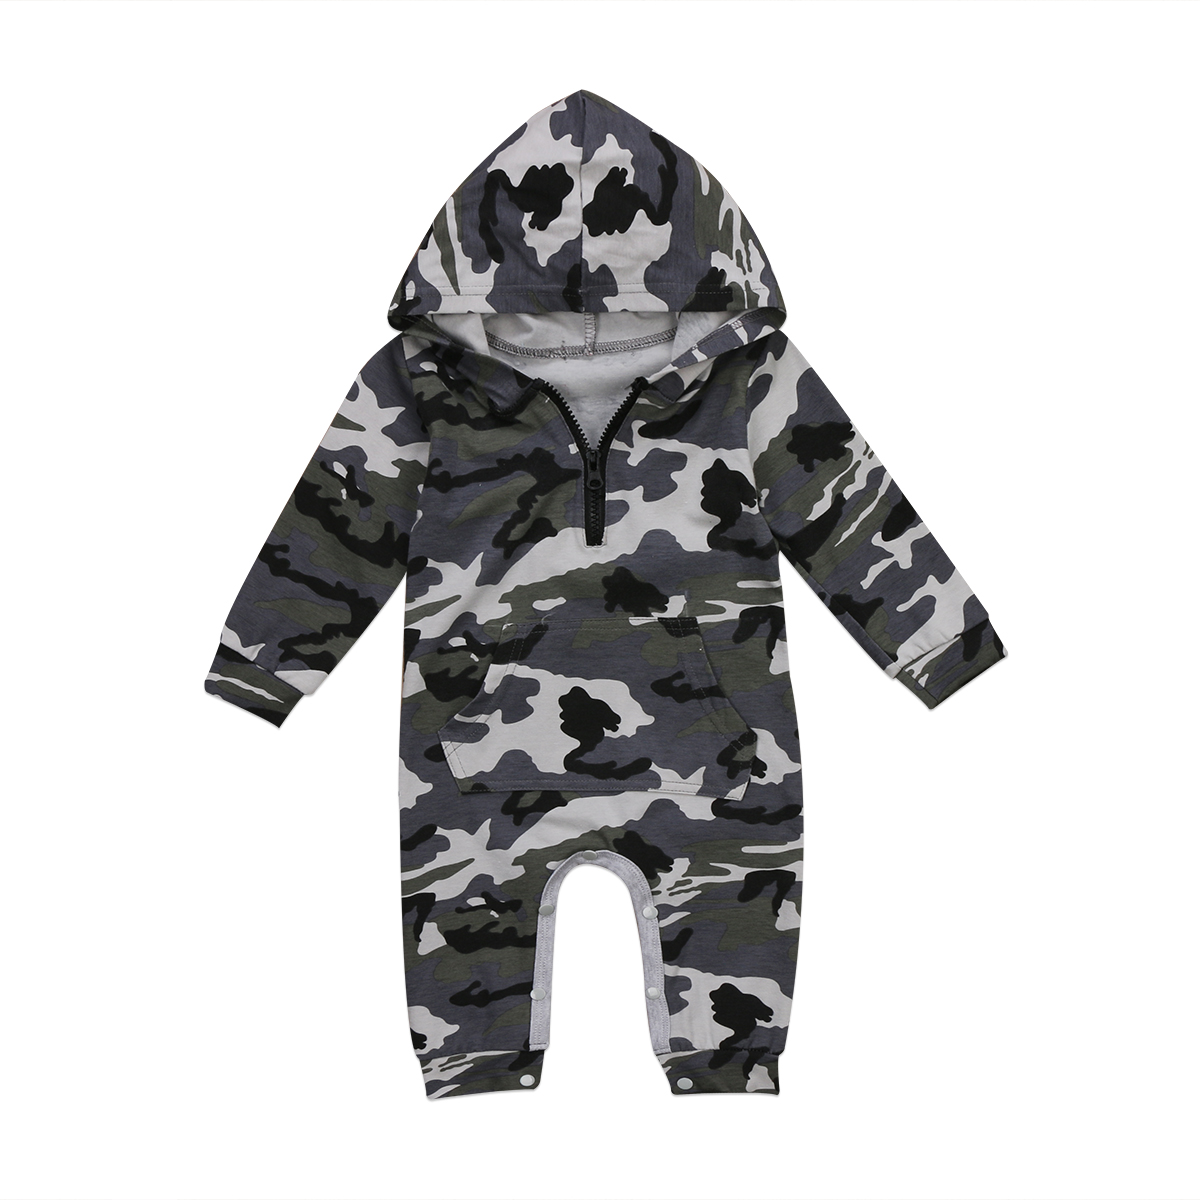 Newborn Baby Boy Girls Hooded Camouflage Cotton Romper Jumpsuit Playsuit One-Pieces Outf ...